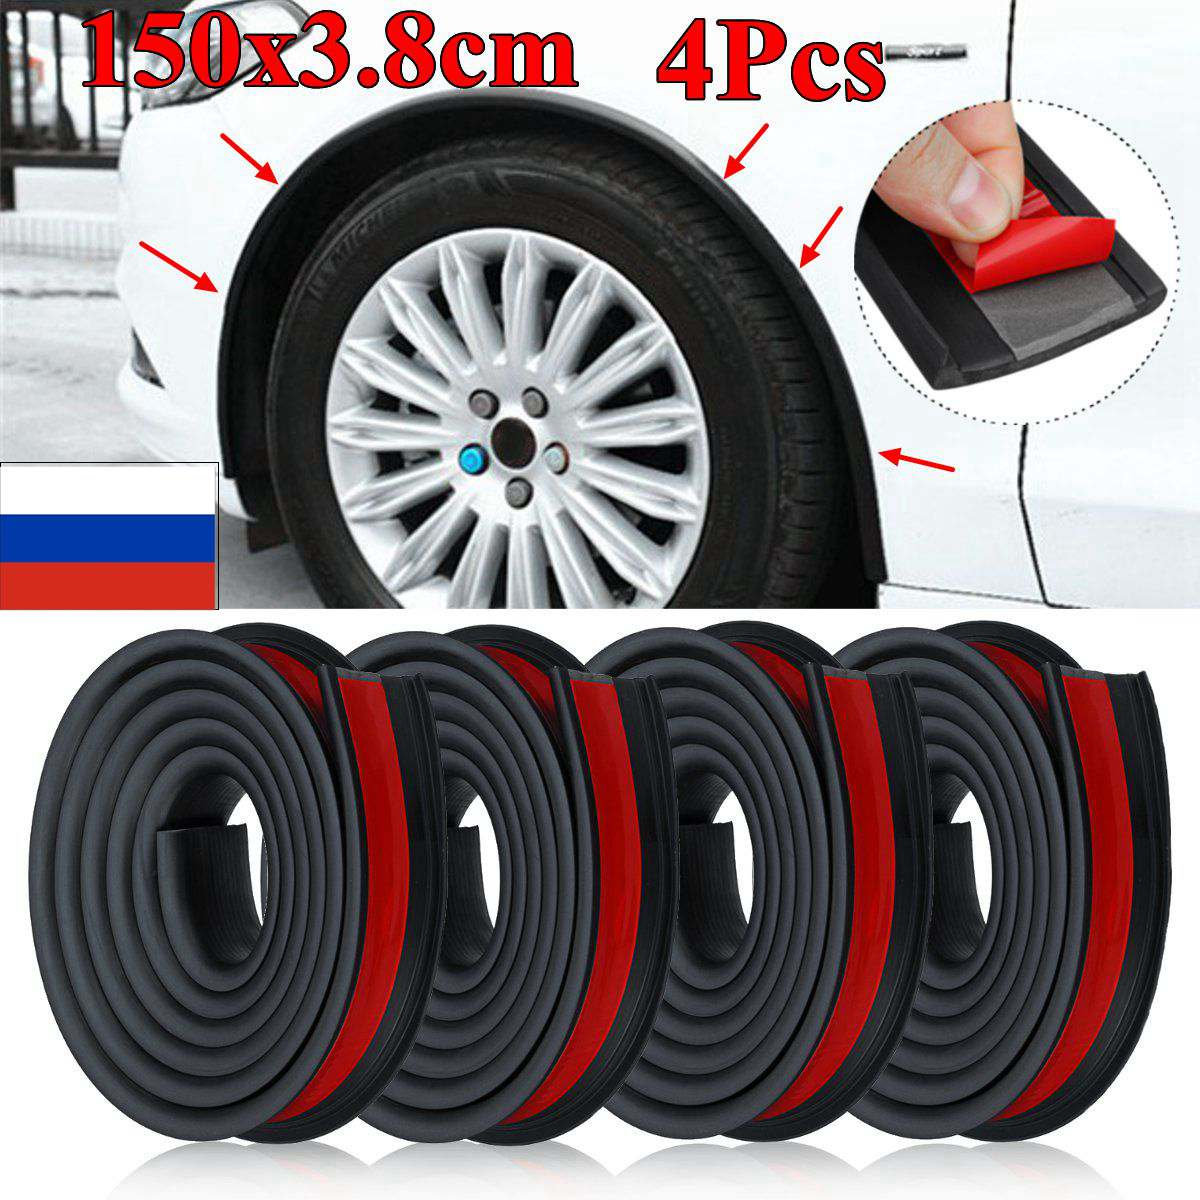 4pcs 1.5Mx3.8CM Universal Rubber Car Wheel Arch Protection Moldings Anti-collision Mudguard Car Wheel Protection Wheel Sticker